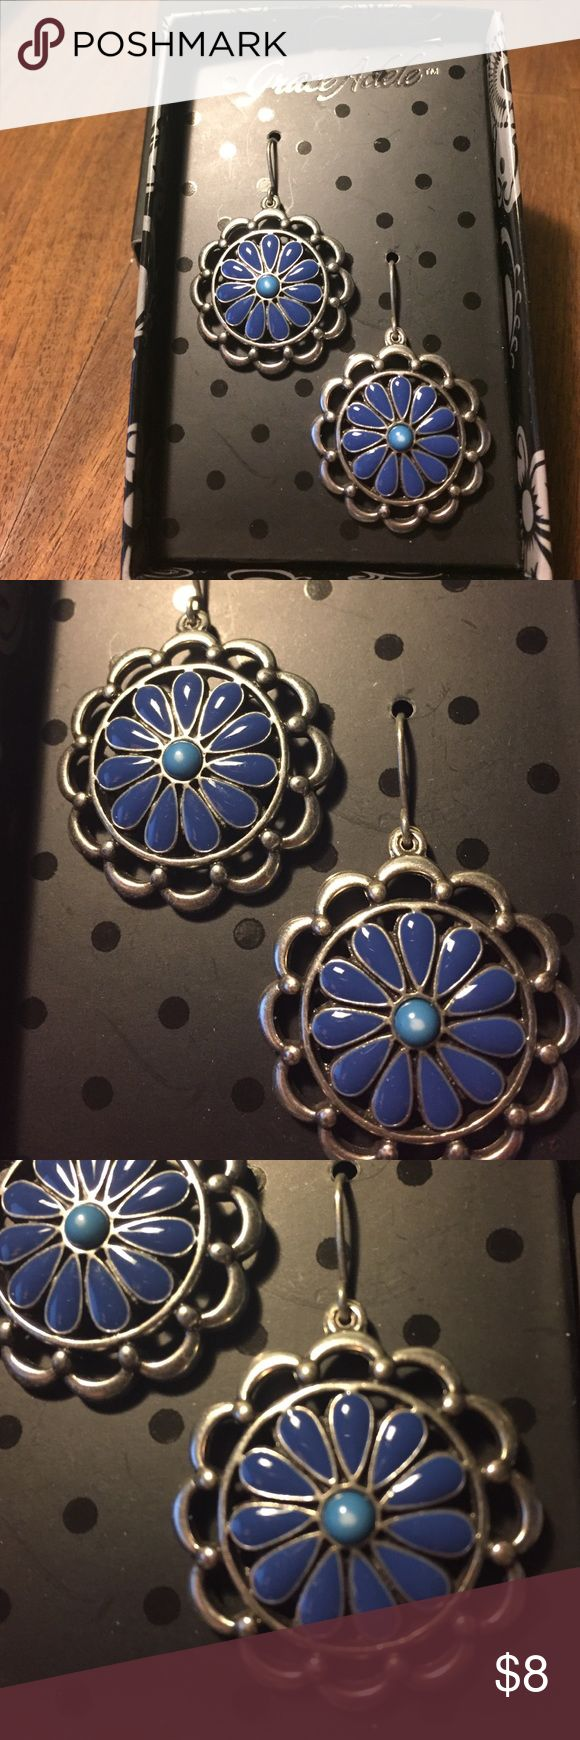 Daisy Earrings New New Blue Daisy Earrings by Grace Adele new in Box did not have tag grace adele Jewelry Earrings